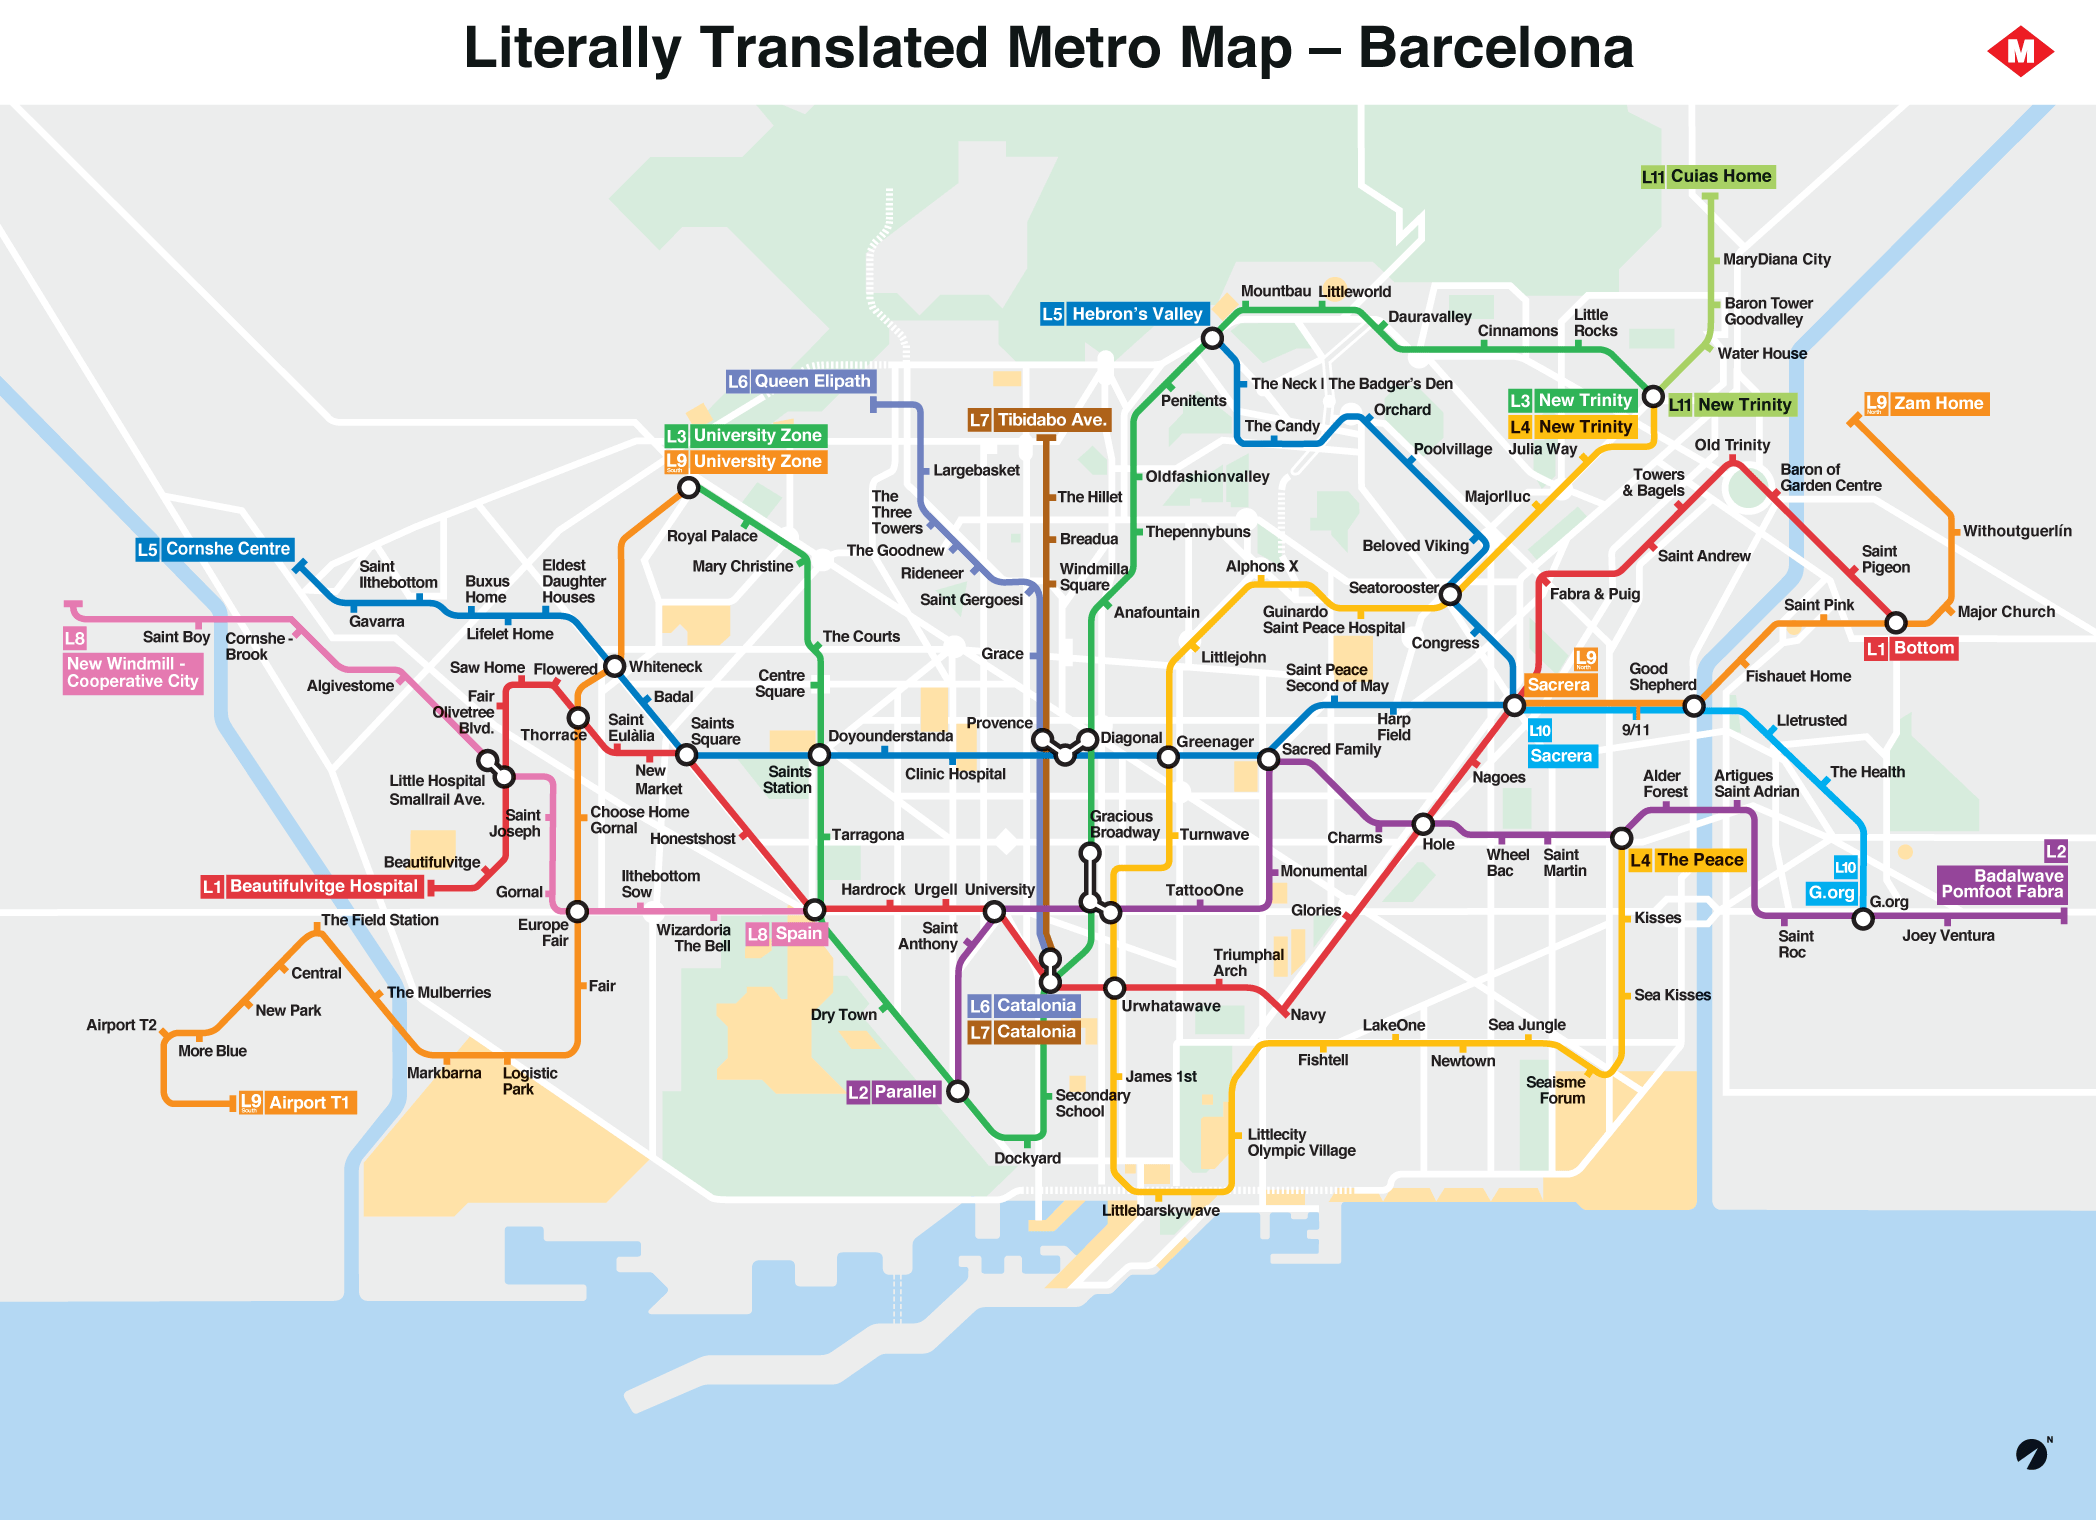 Barcelona Metro Map Literally Translated To English With Brilliant